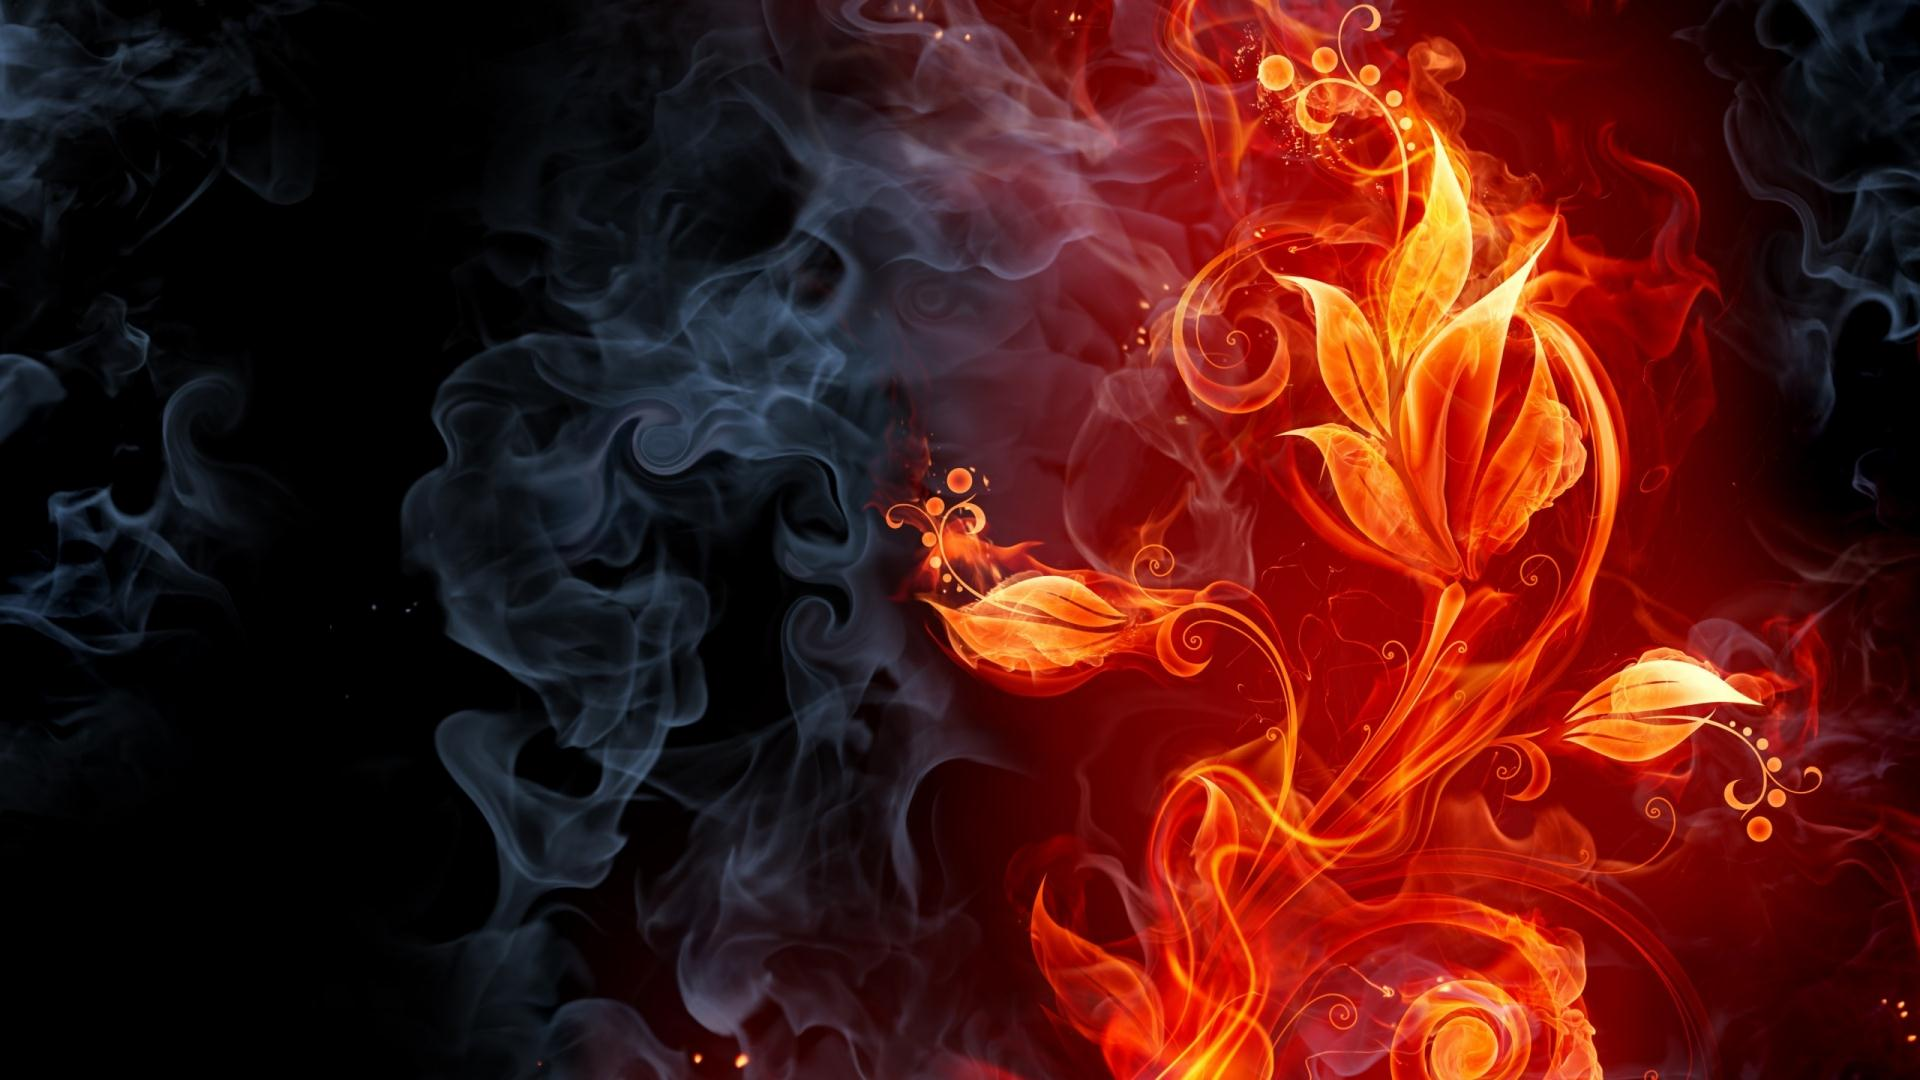 3D Abstract Fire Flowers Wallpaper